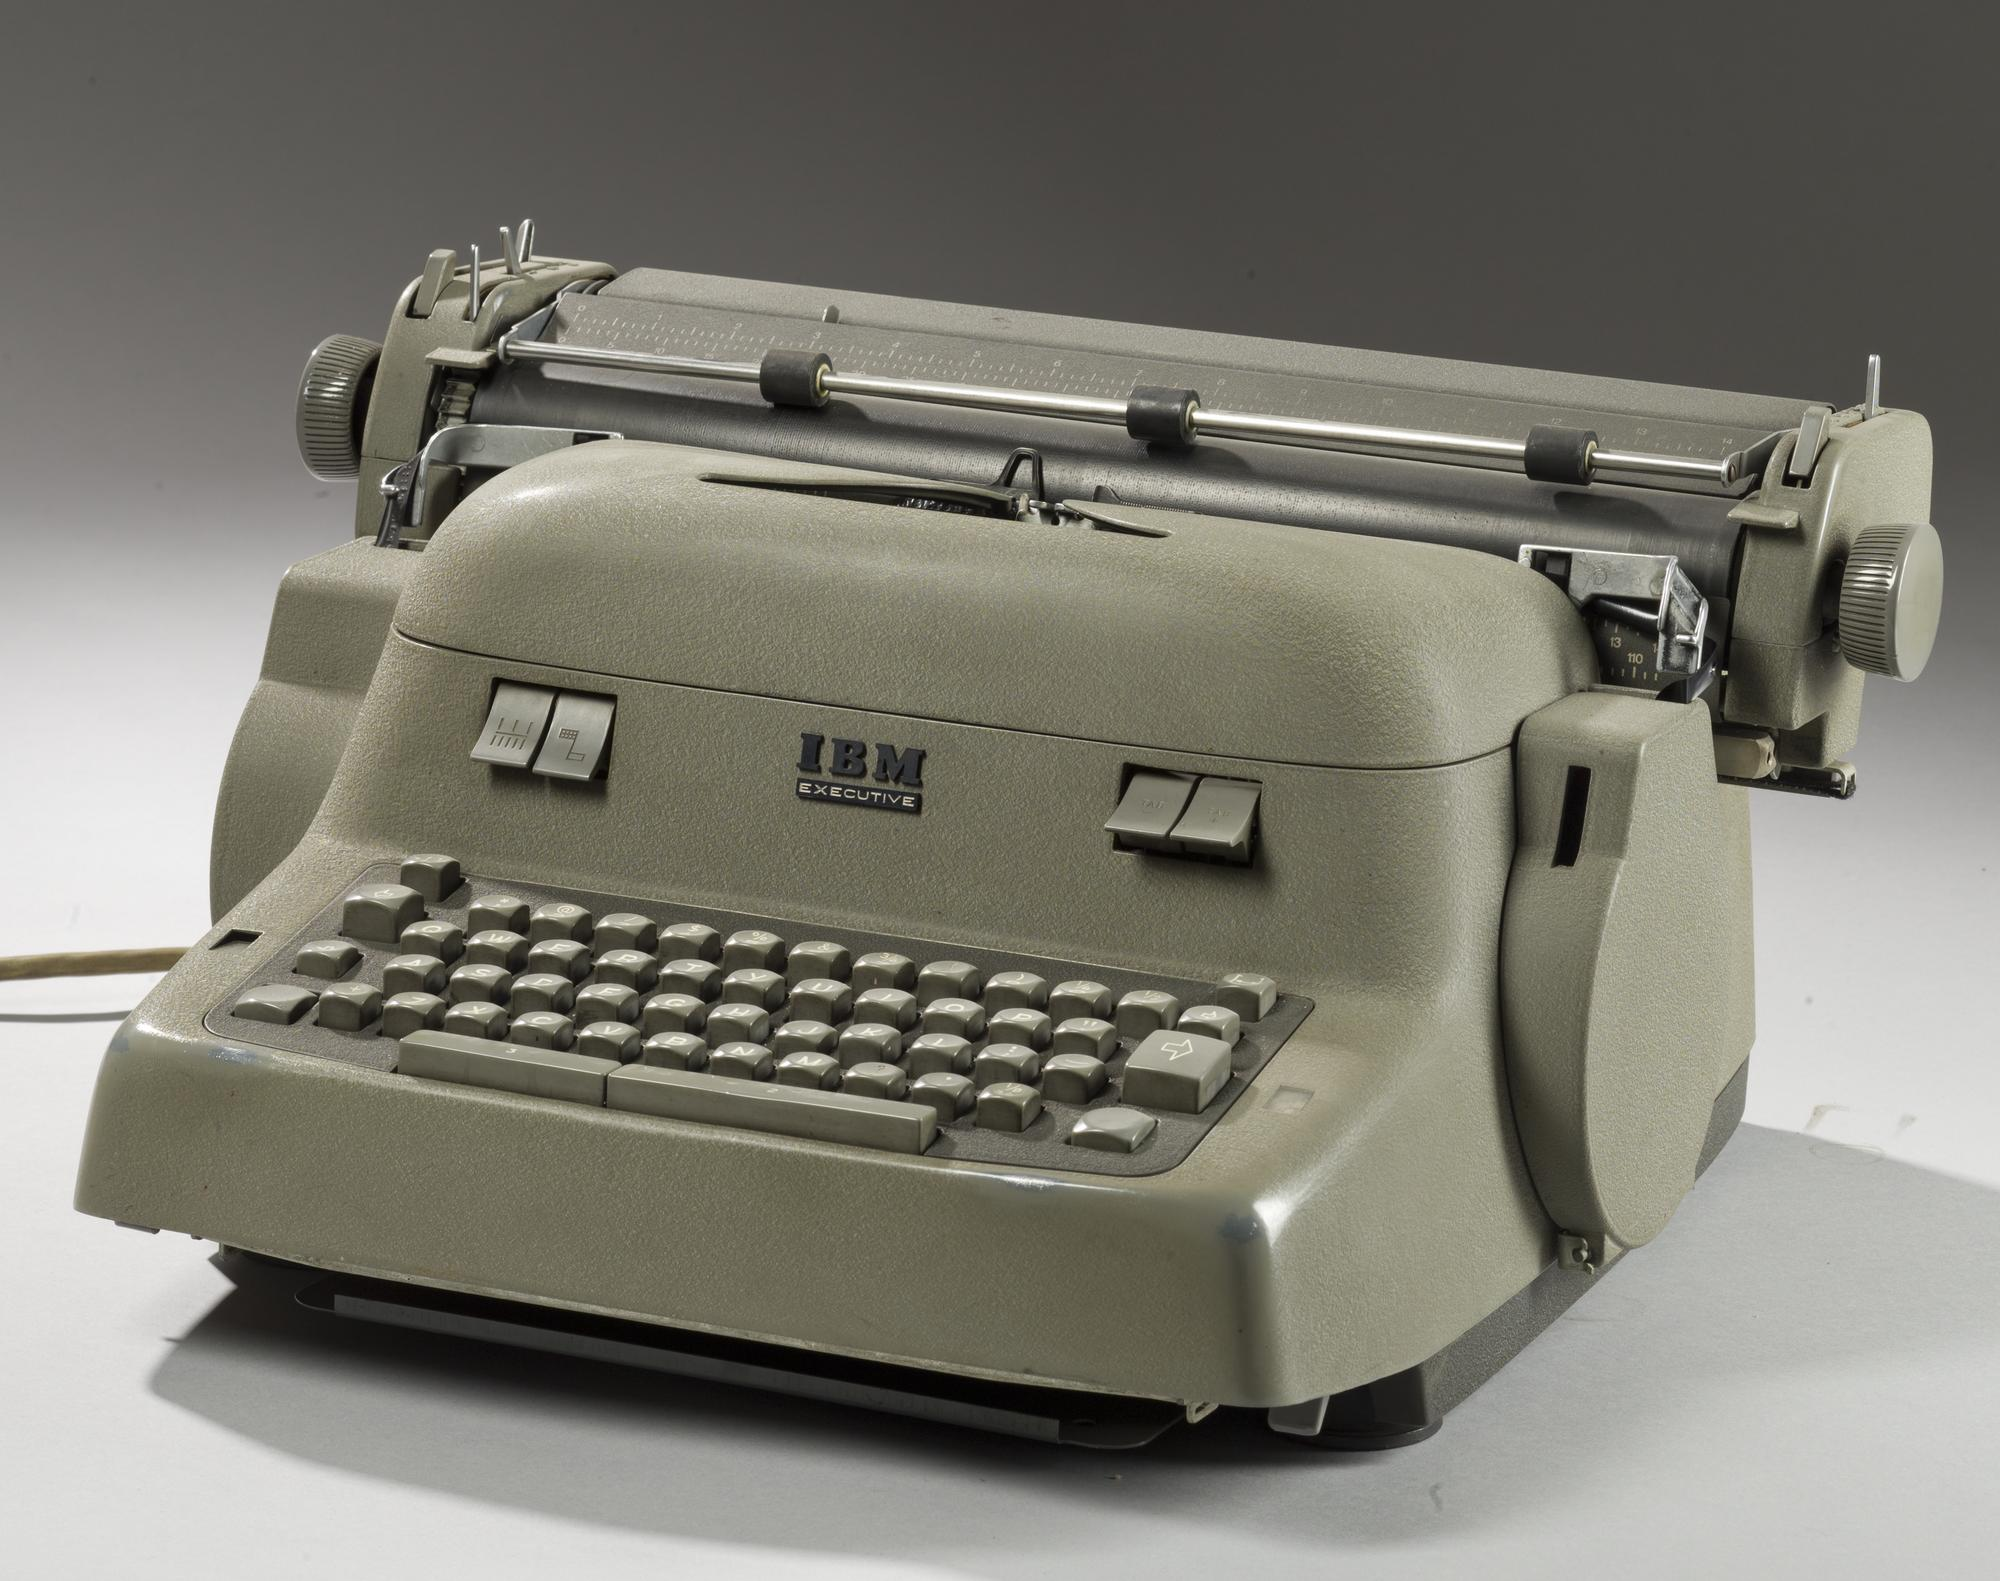 'Executive' electric typewriter with bold-face type and dull grey crackle finish, by I.B.M., 1957